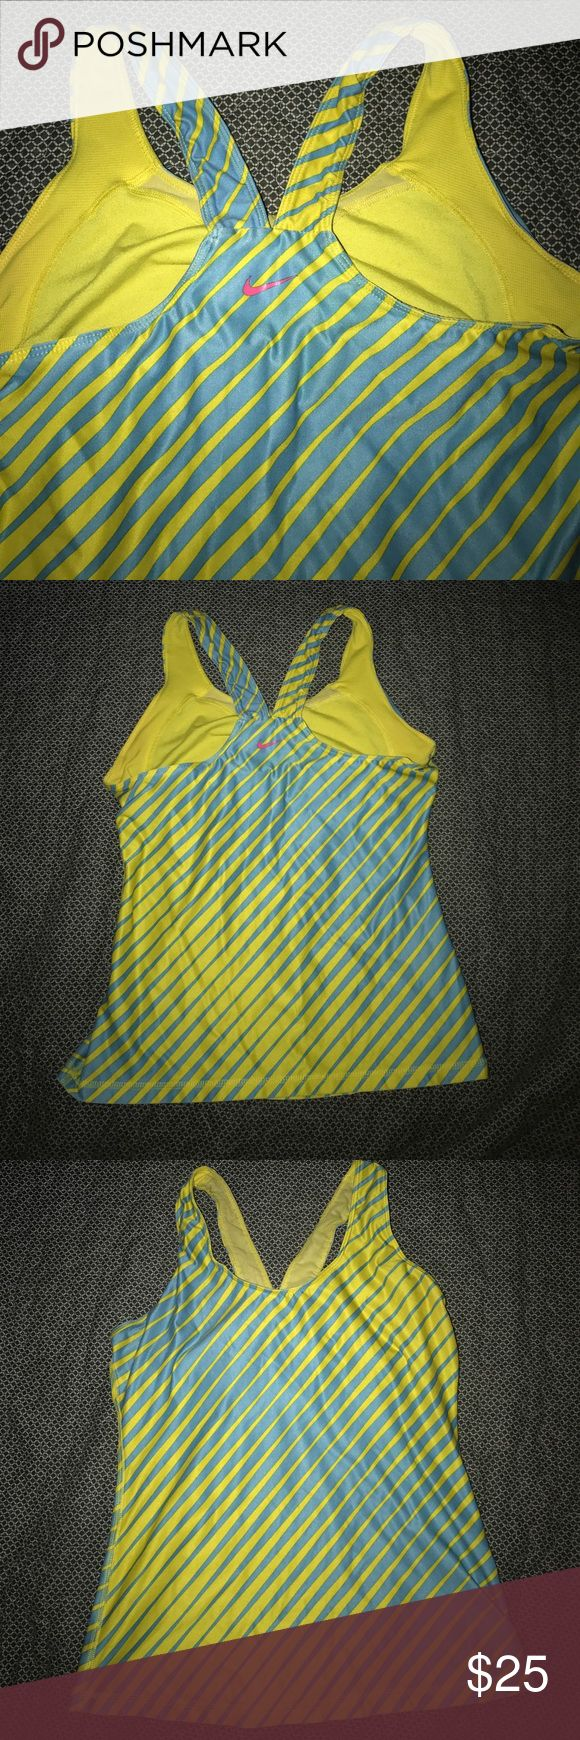 Nike tank top Stretchy Nike tank top with built-in bra. Vibrant blue and yellow with pink Nike swoosh on the back. Good condition. Nike Tops Tank Tops